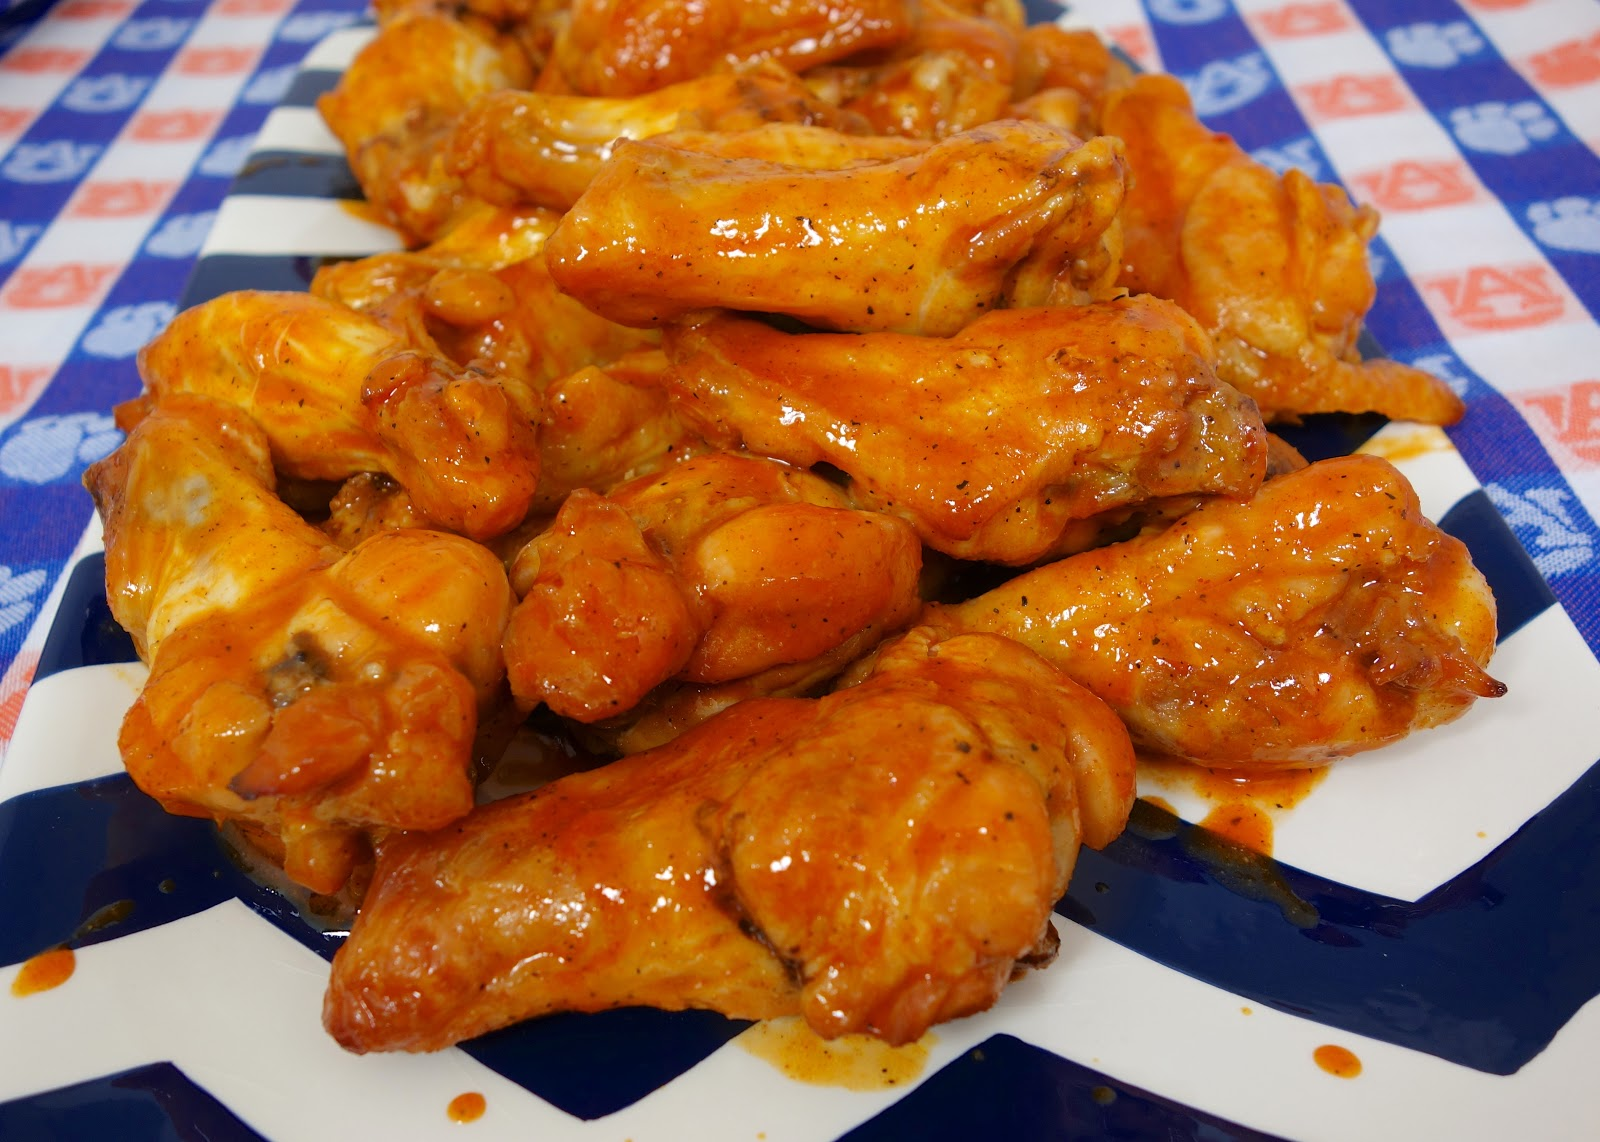 Beer Brined Chicken Wings - CRAZY delicious wings!! Baked not fried!!! Chicken wings marinated in beer, brown sugar, and salt. Bake on a rack in the oven and toss in buffalo wing sauce. Serve with ranch, bleu cheese and celery sticks. Great for parties! #chicken #tailgating #chickenwings #buffalowings